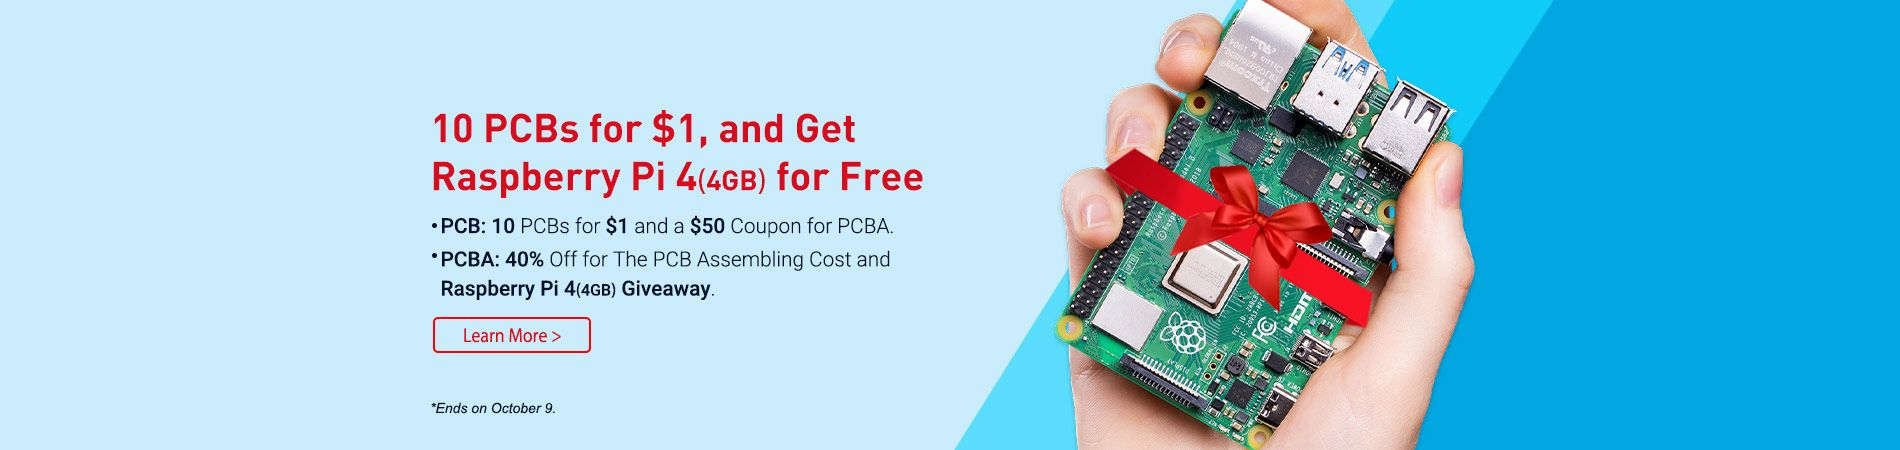 /blog/10-pcbs-for-1-and-raspberry-pi-4(4gb)giveaway.html